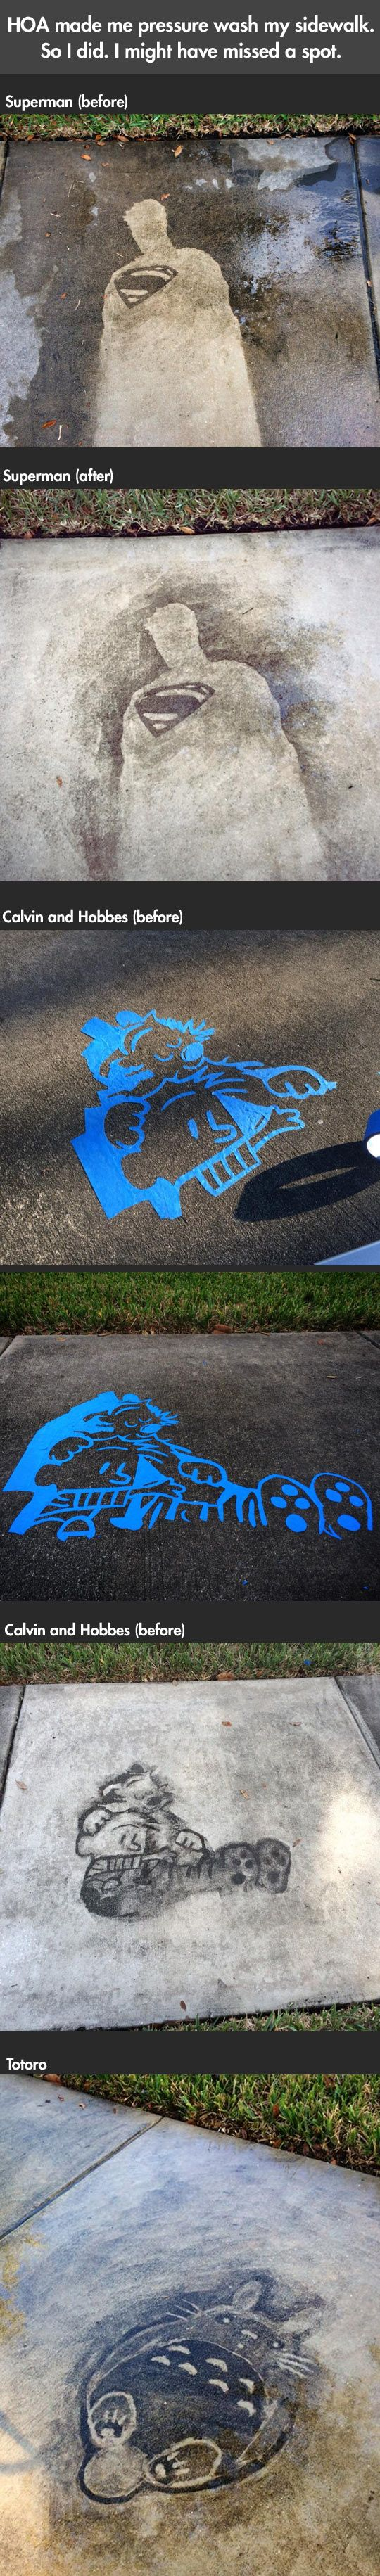 Comics drawn on a sidewalk with a pressure washer…